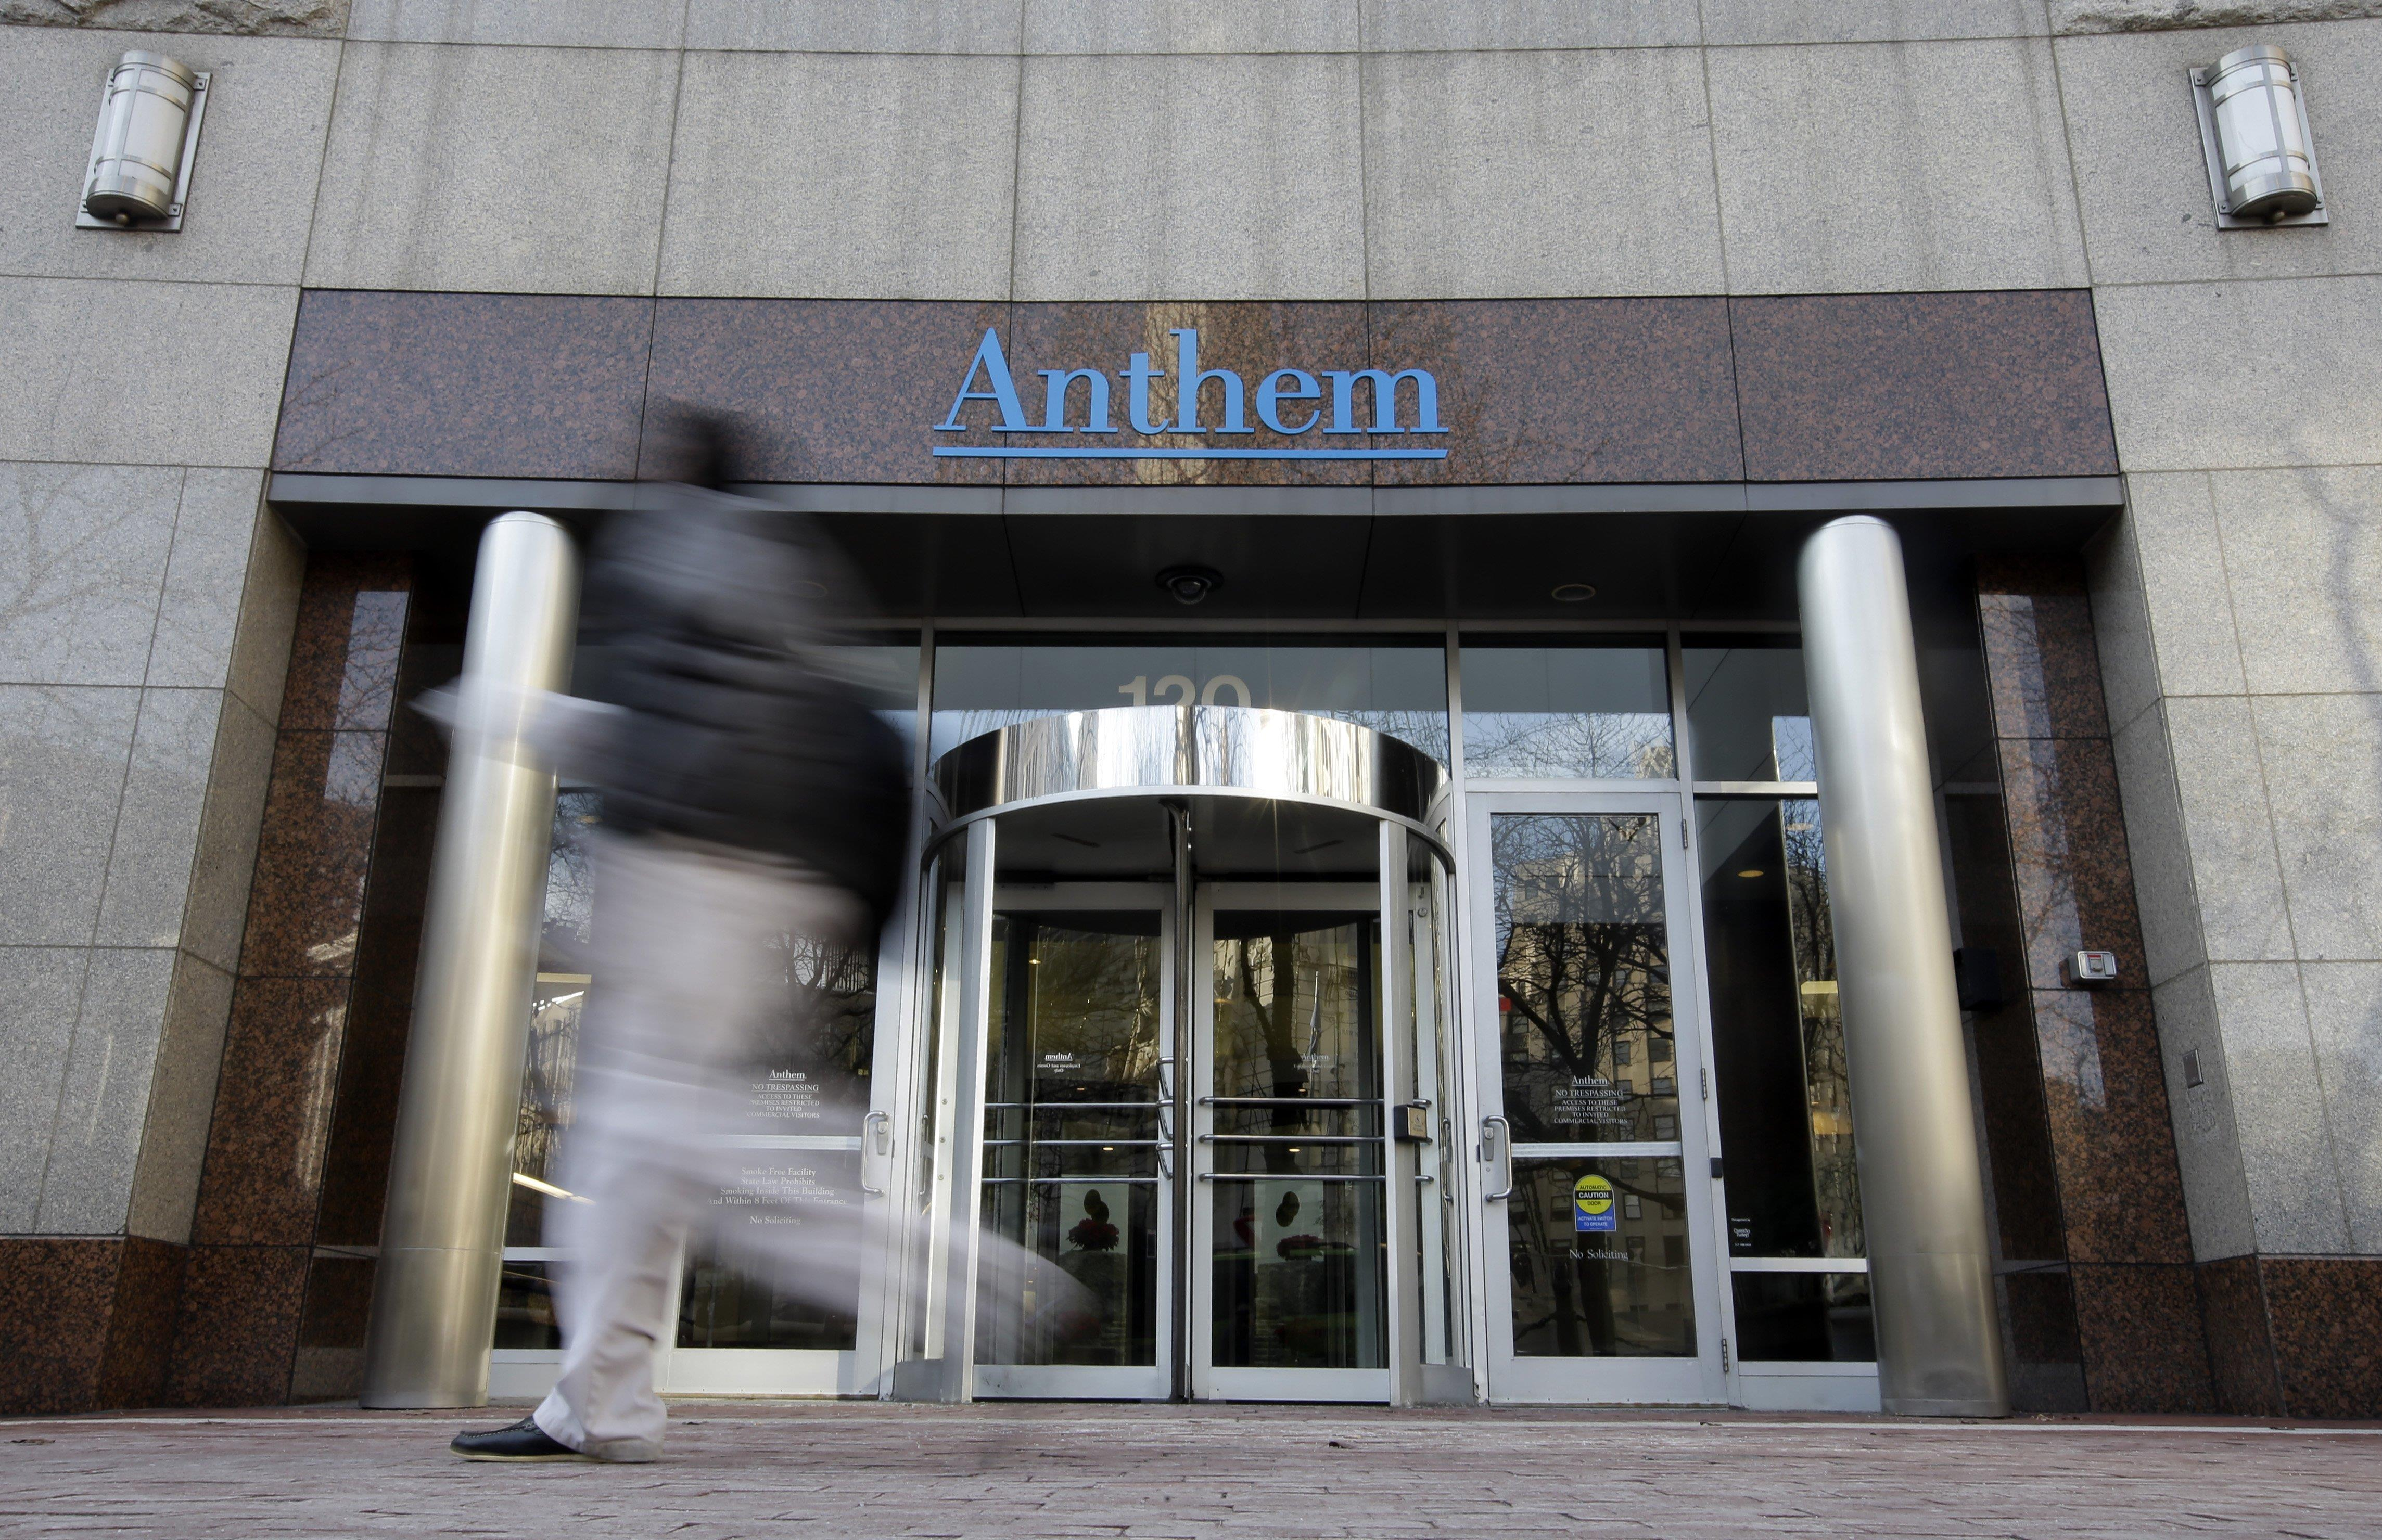 Anthem Breach: What Should I Do Right Now?